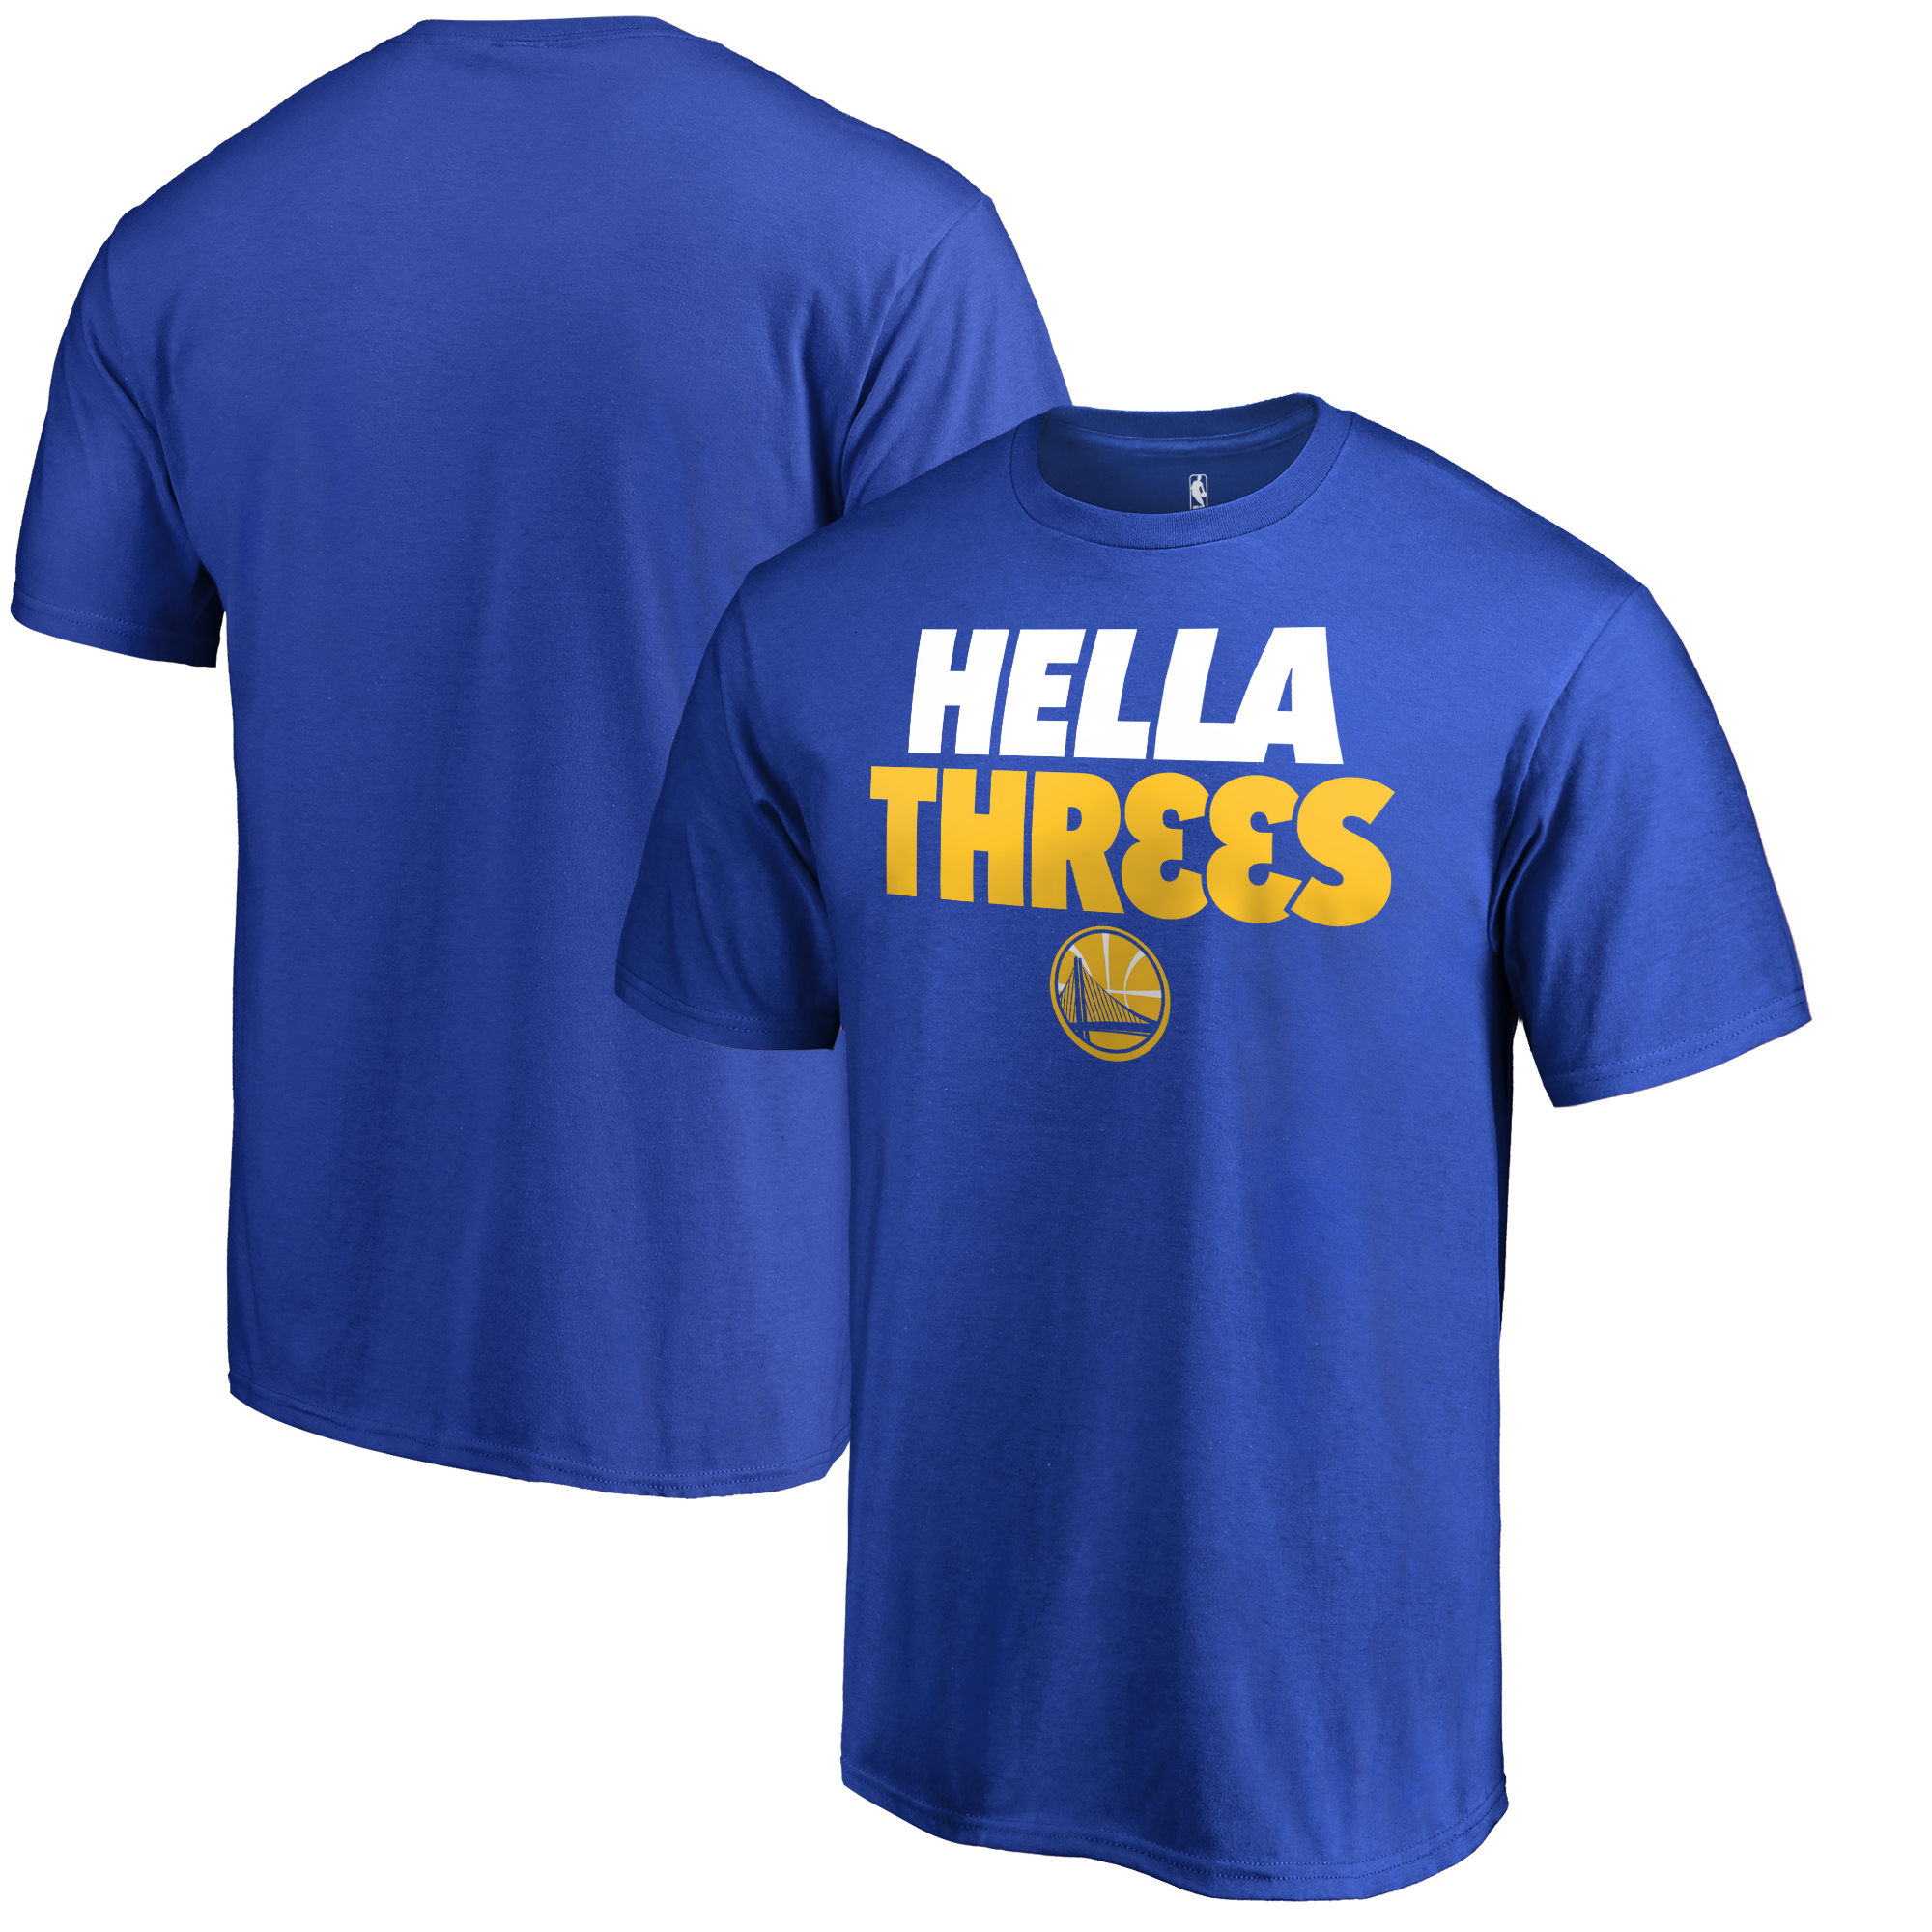 Golden State Warriors Fanatics Branded Youth Hometown Collection Hella Threes T-Shirt - Royal